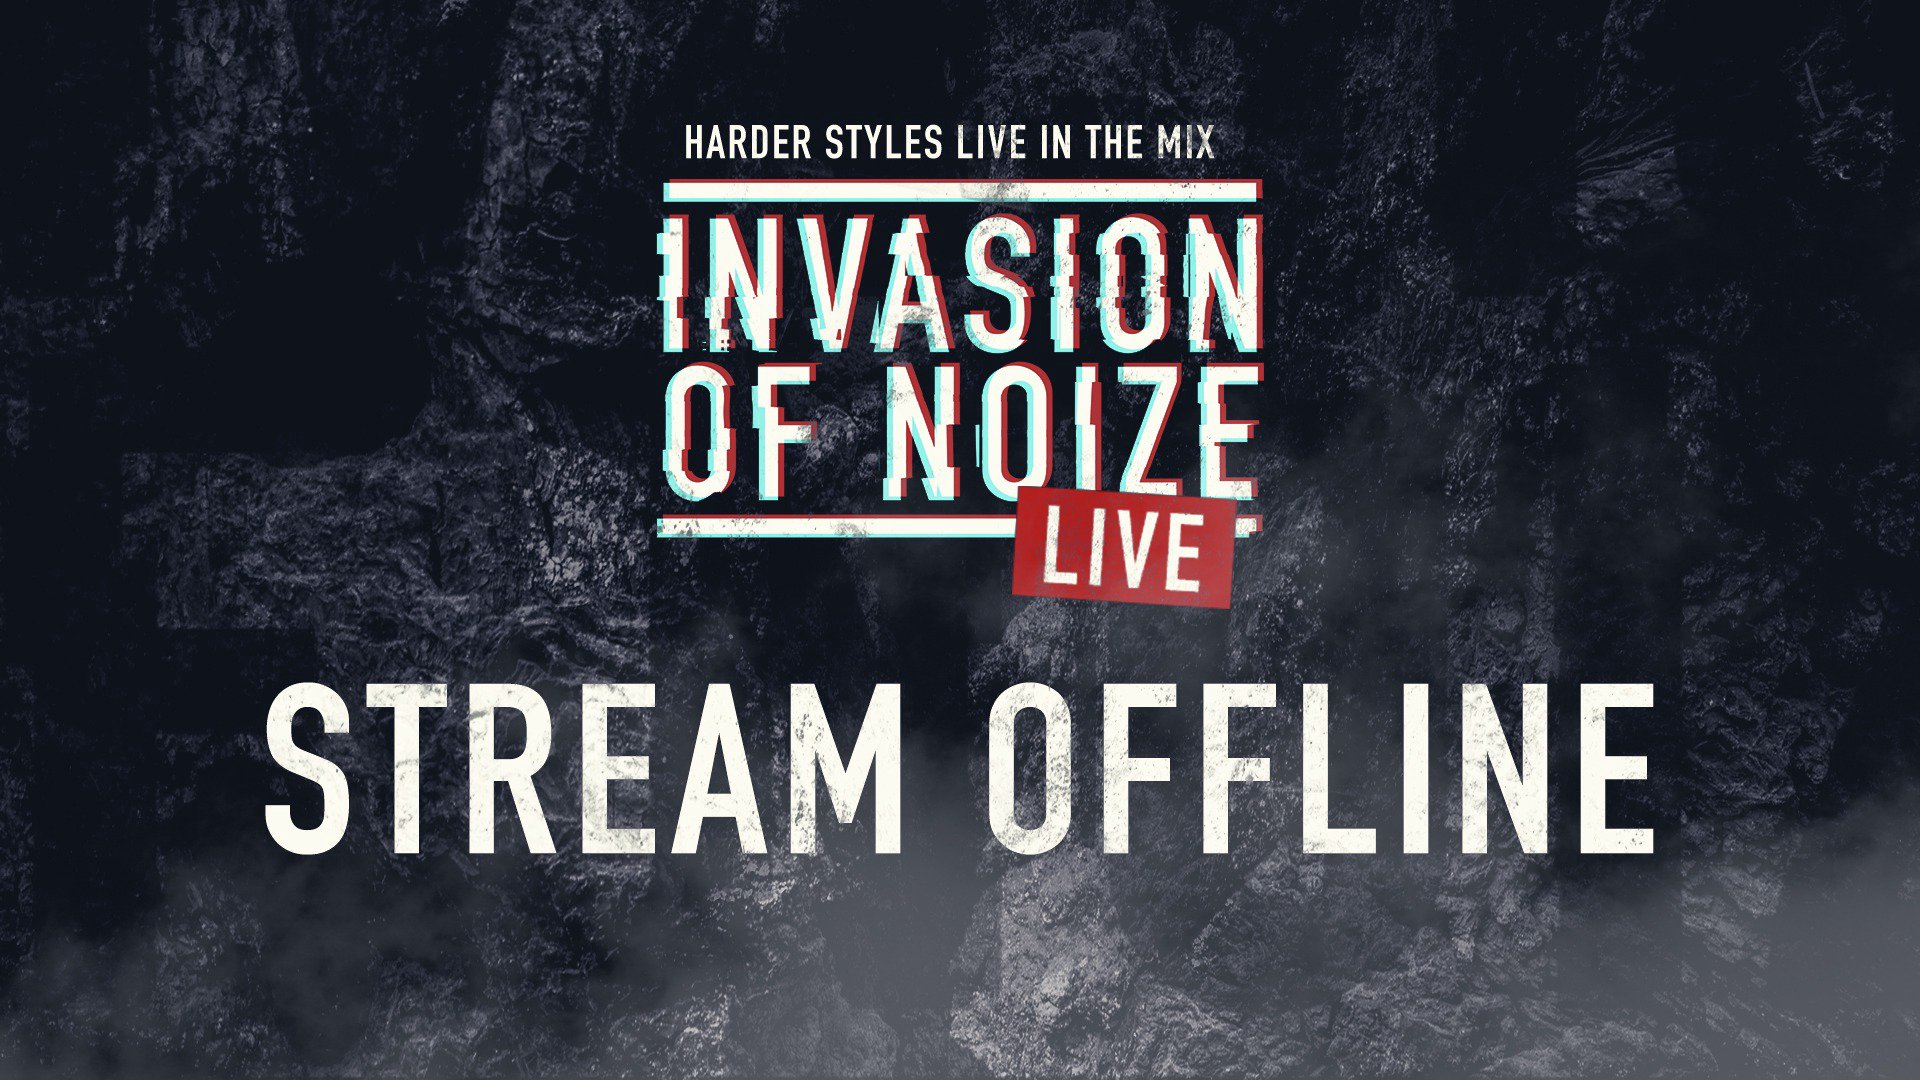 Twitch stream of NoizefreakLIVE